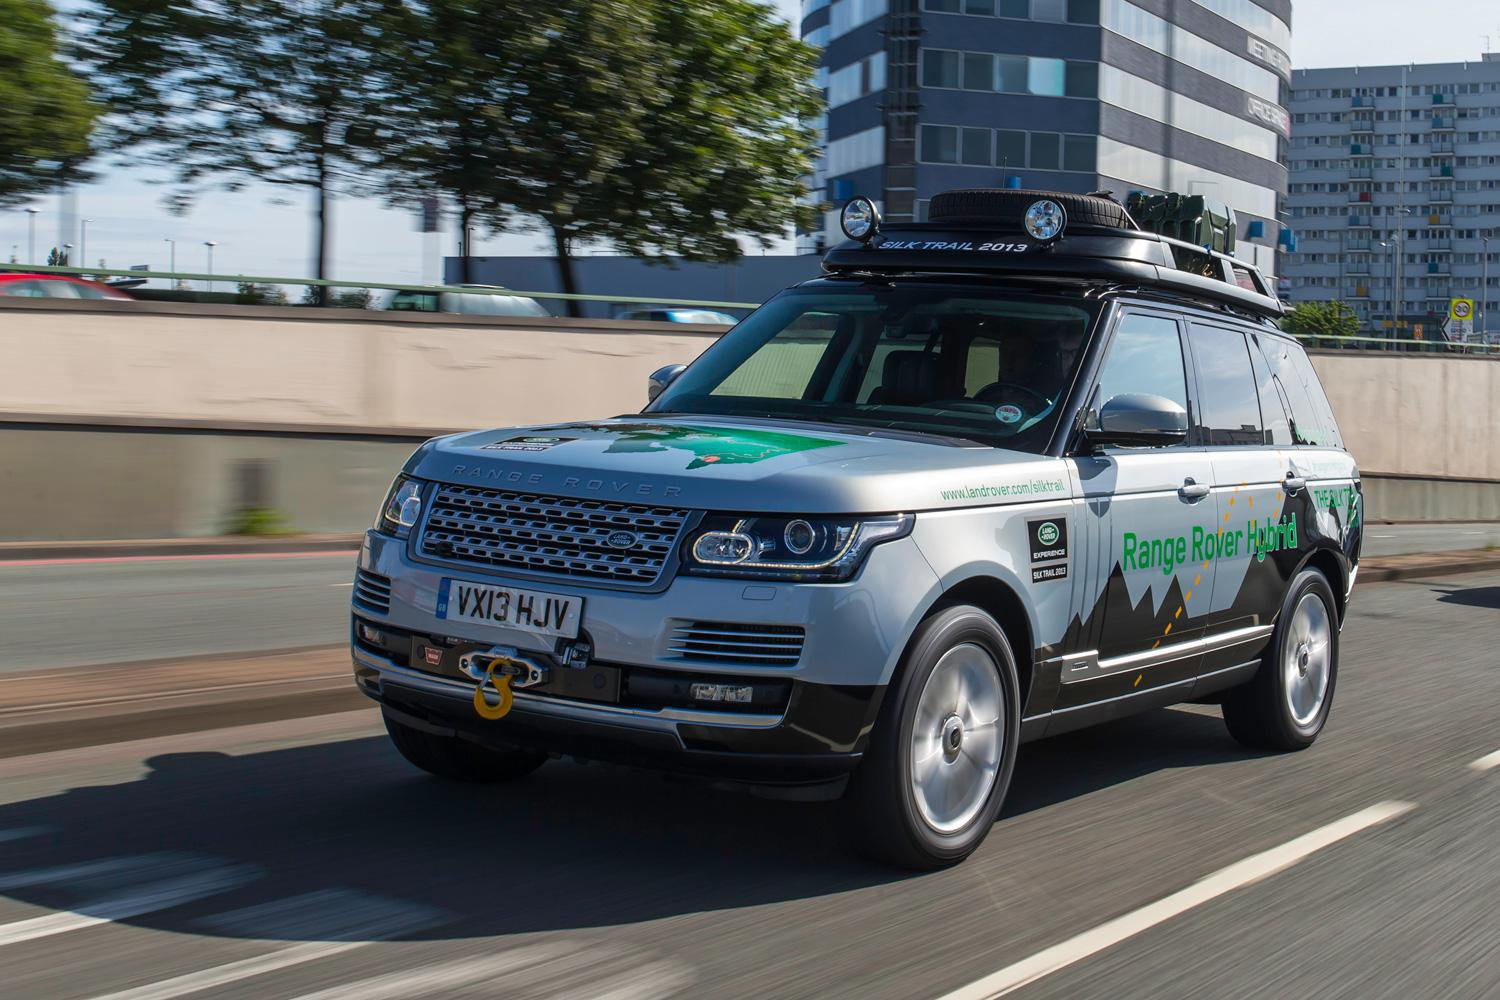 More Land Rover hybrids coming